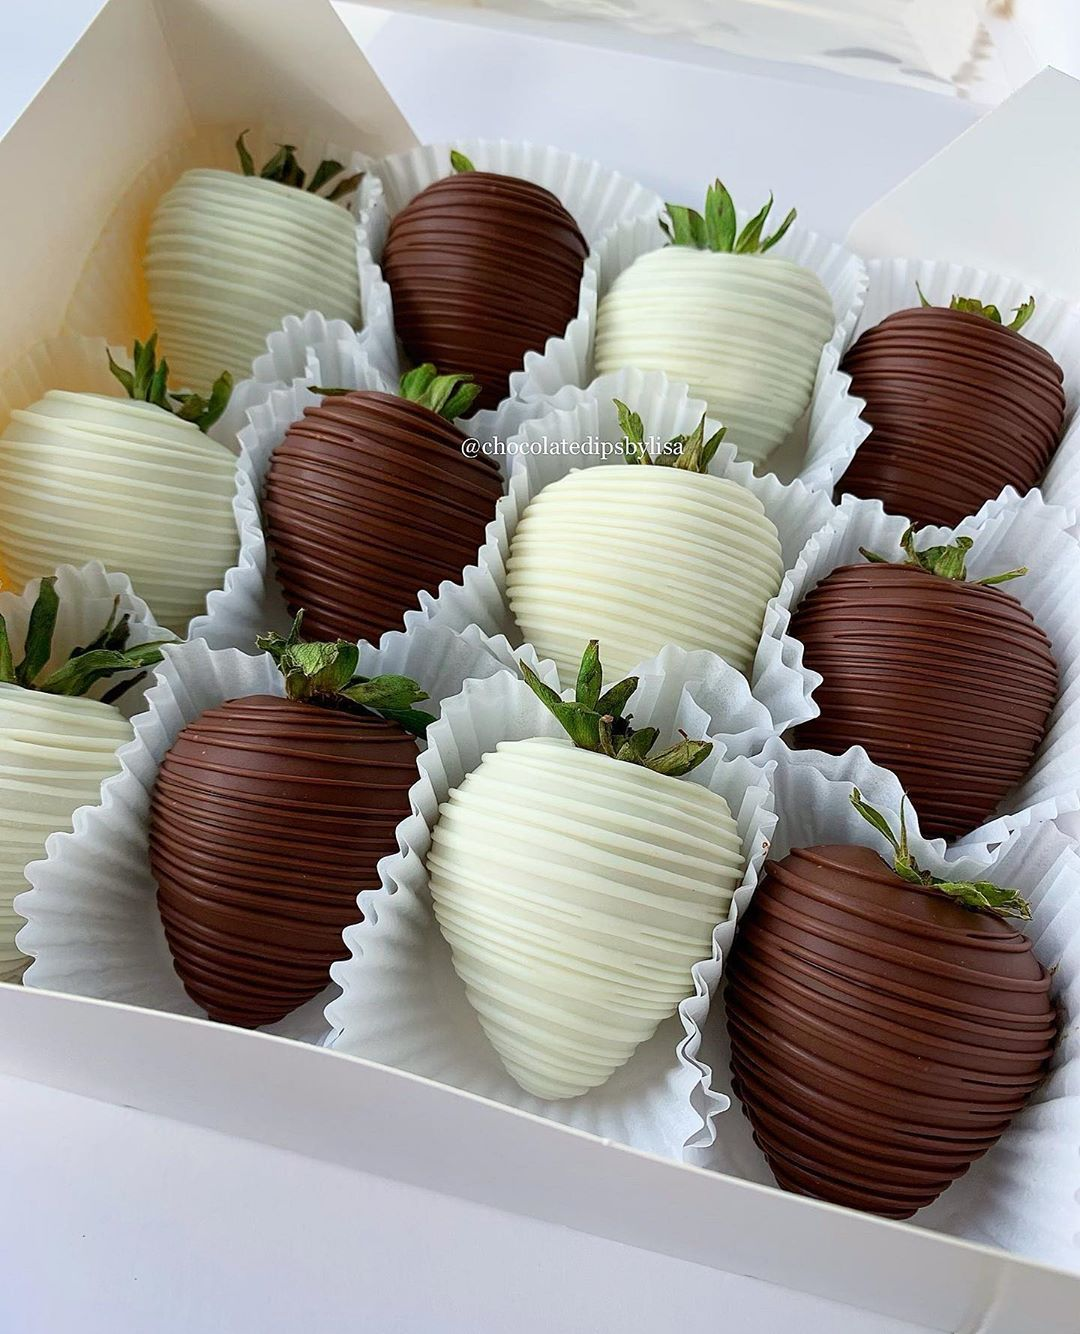 Houston Chocolate Dips On Instagram Can Not Go Wrong With The Classic Milk White Chocolate Dipped Strawberries Houston Chocolatecoveredstrawberries